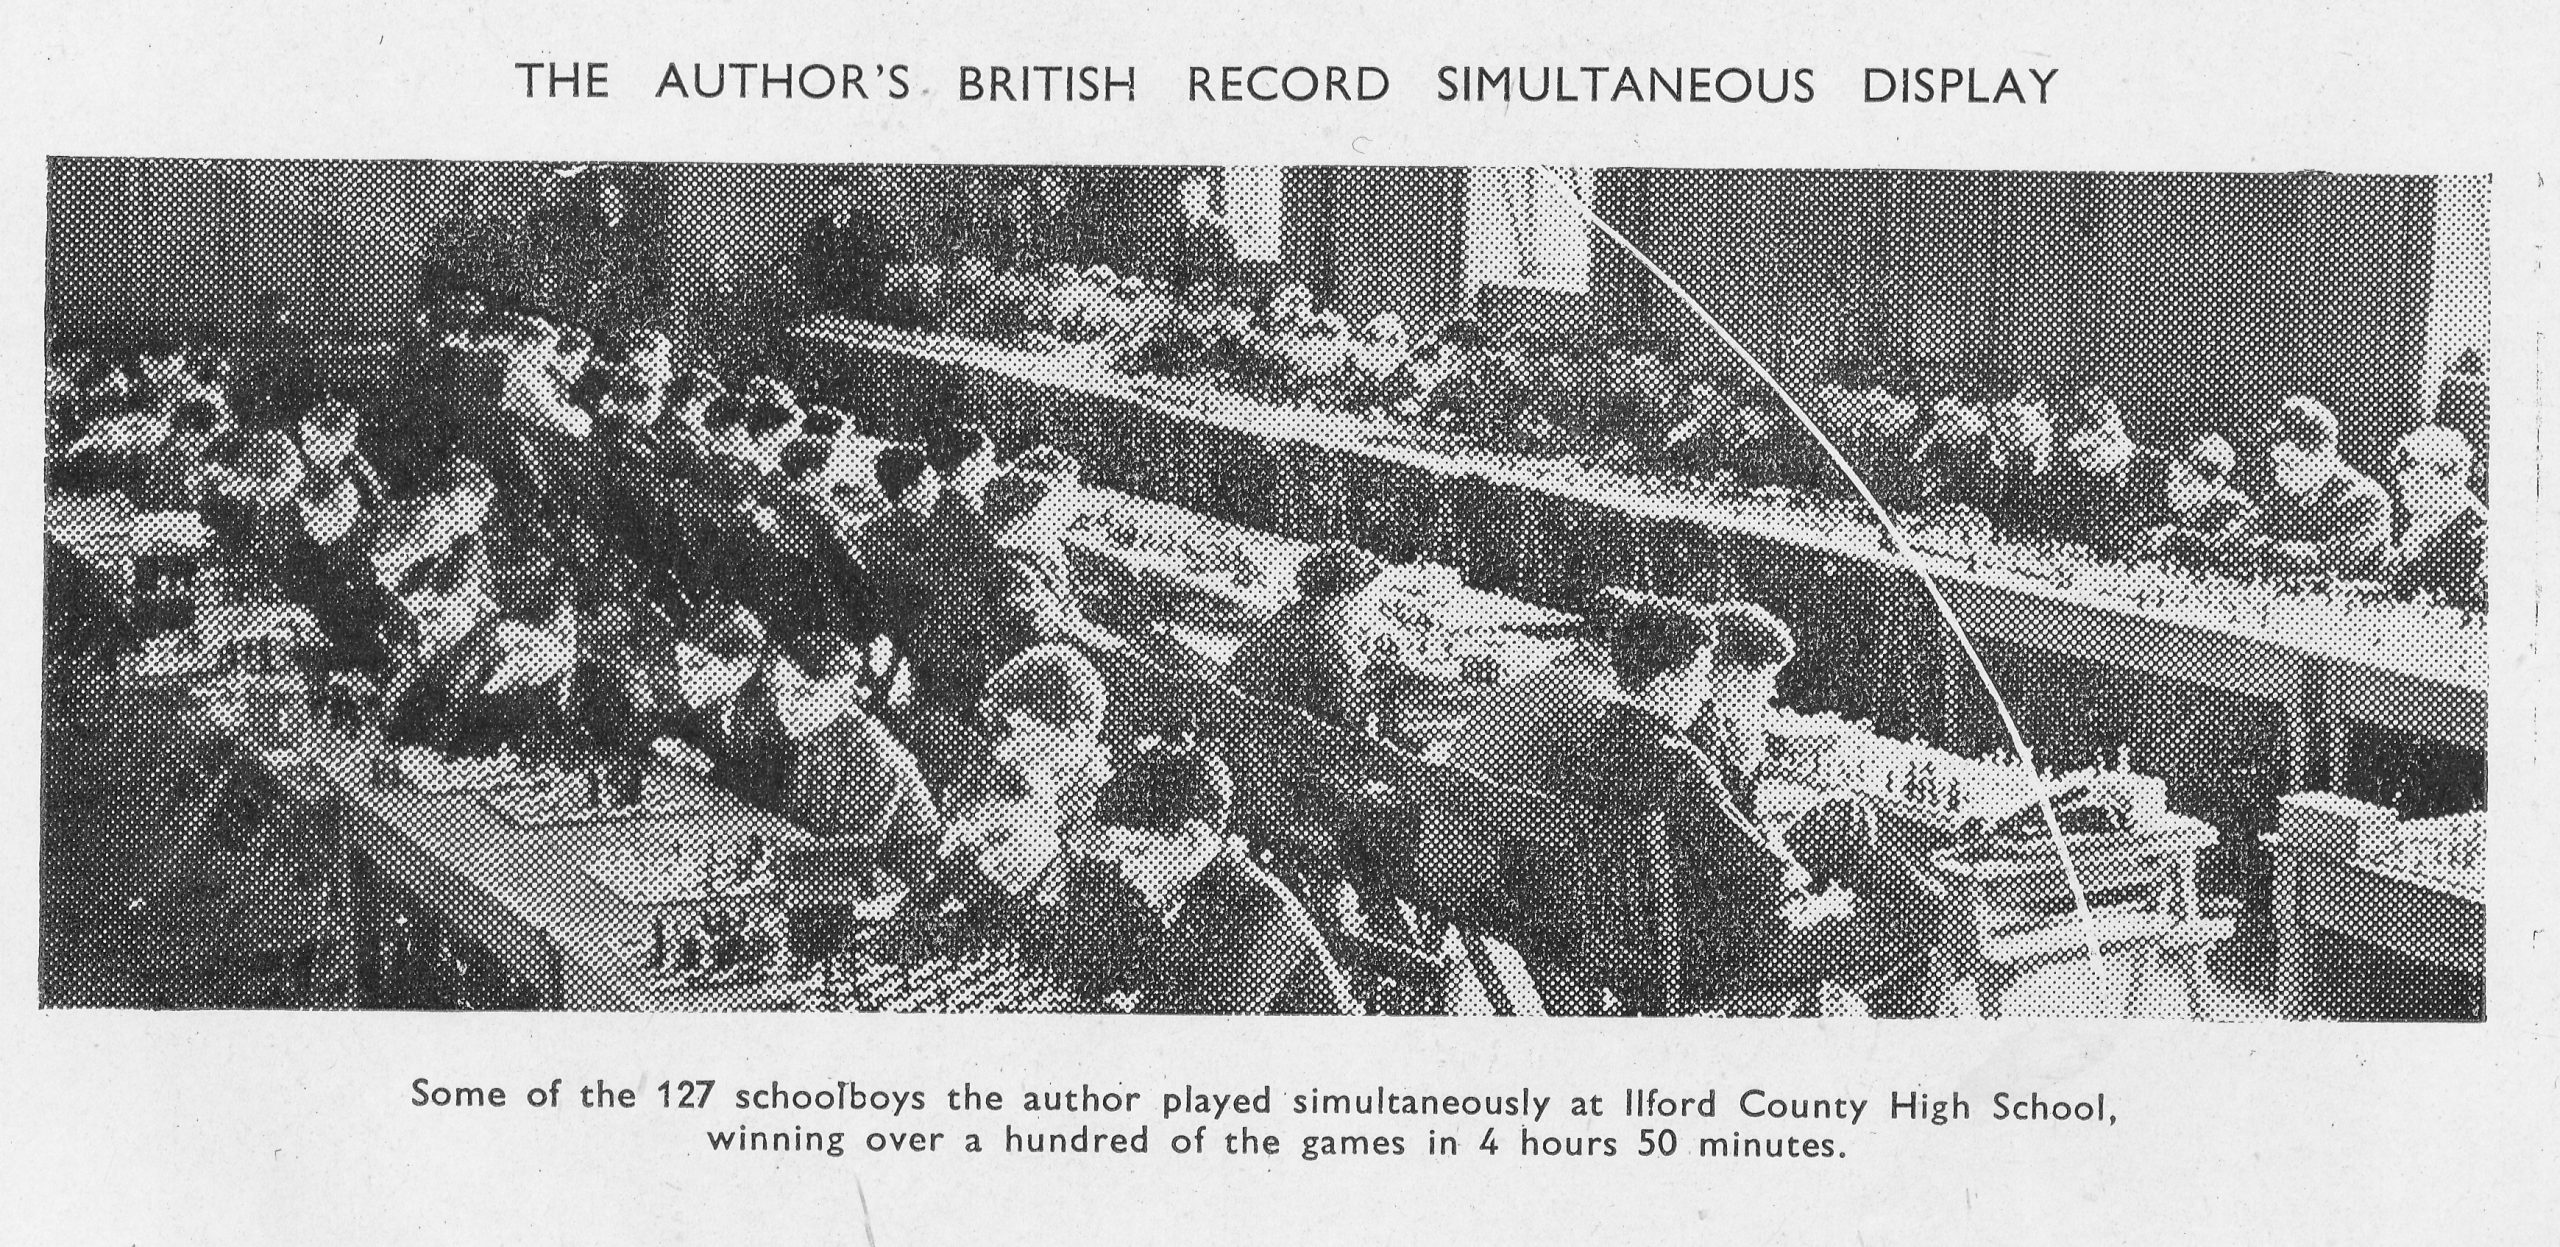 The Author's British Record Simultaneous Display. Some of the 127 schoolboys the author played simultaneously ay Ilford County High School, Winning over a a hundred of the games in 4 hours and 50 minutes.